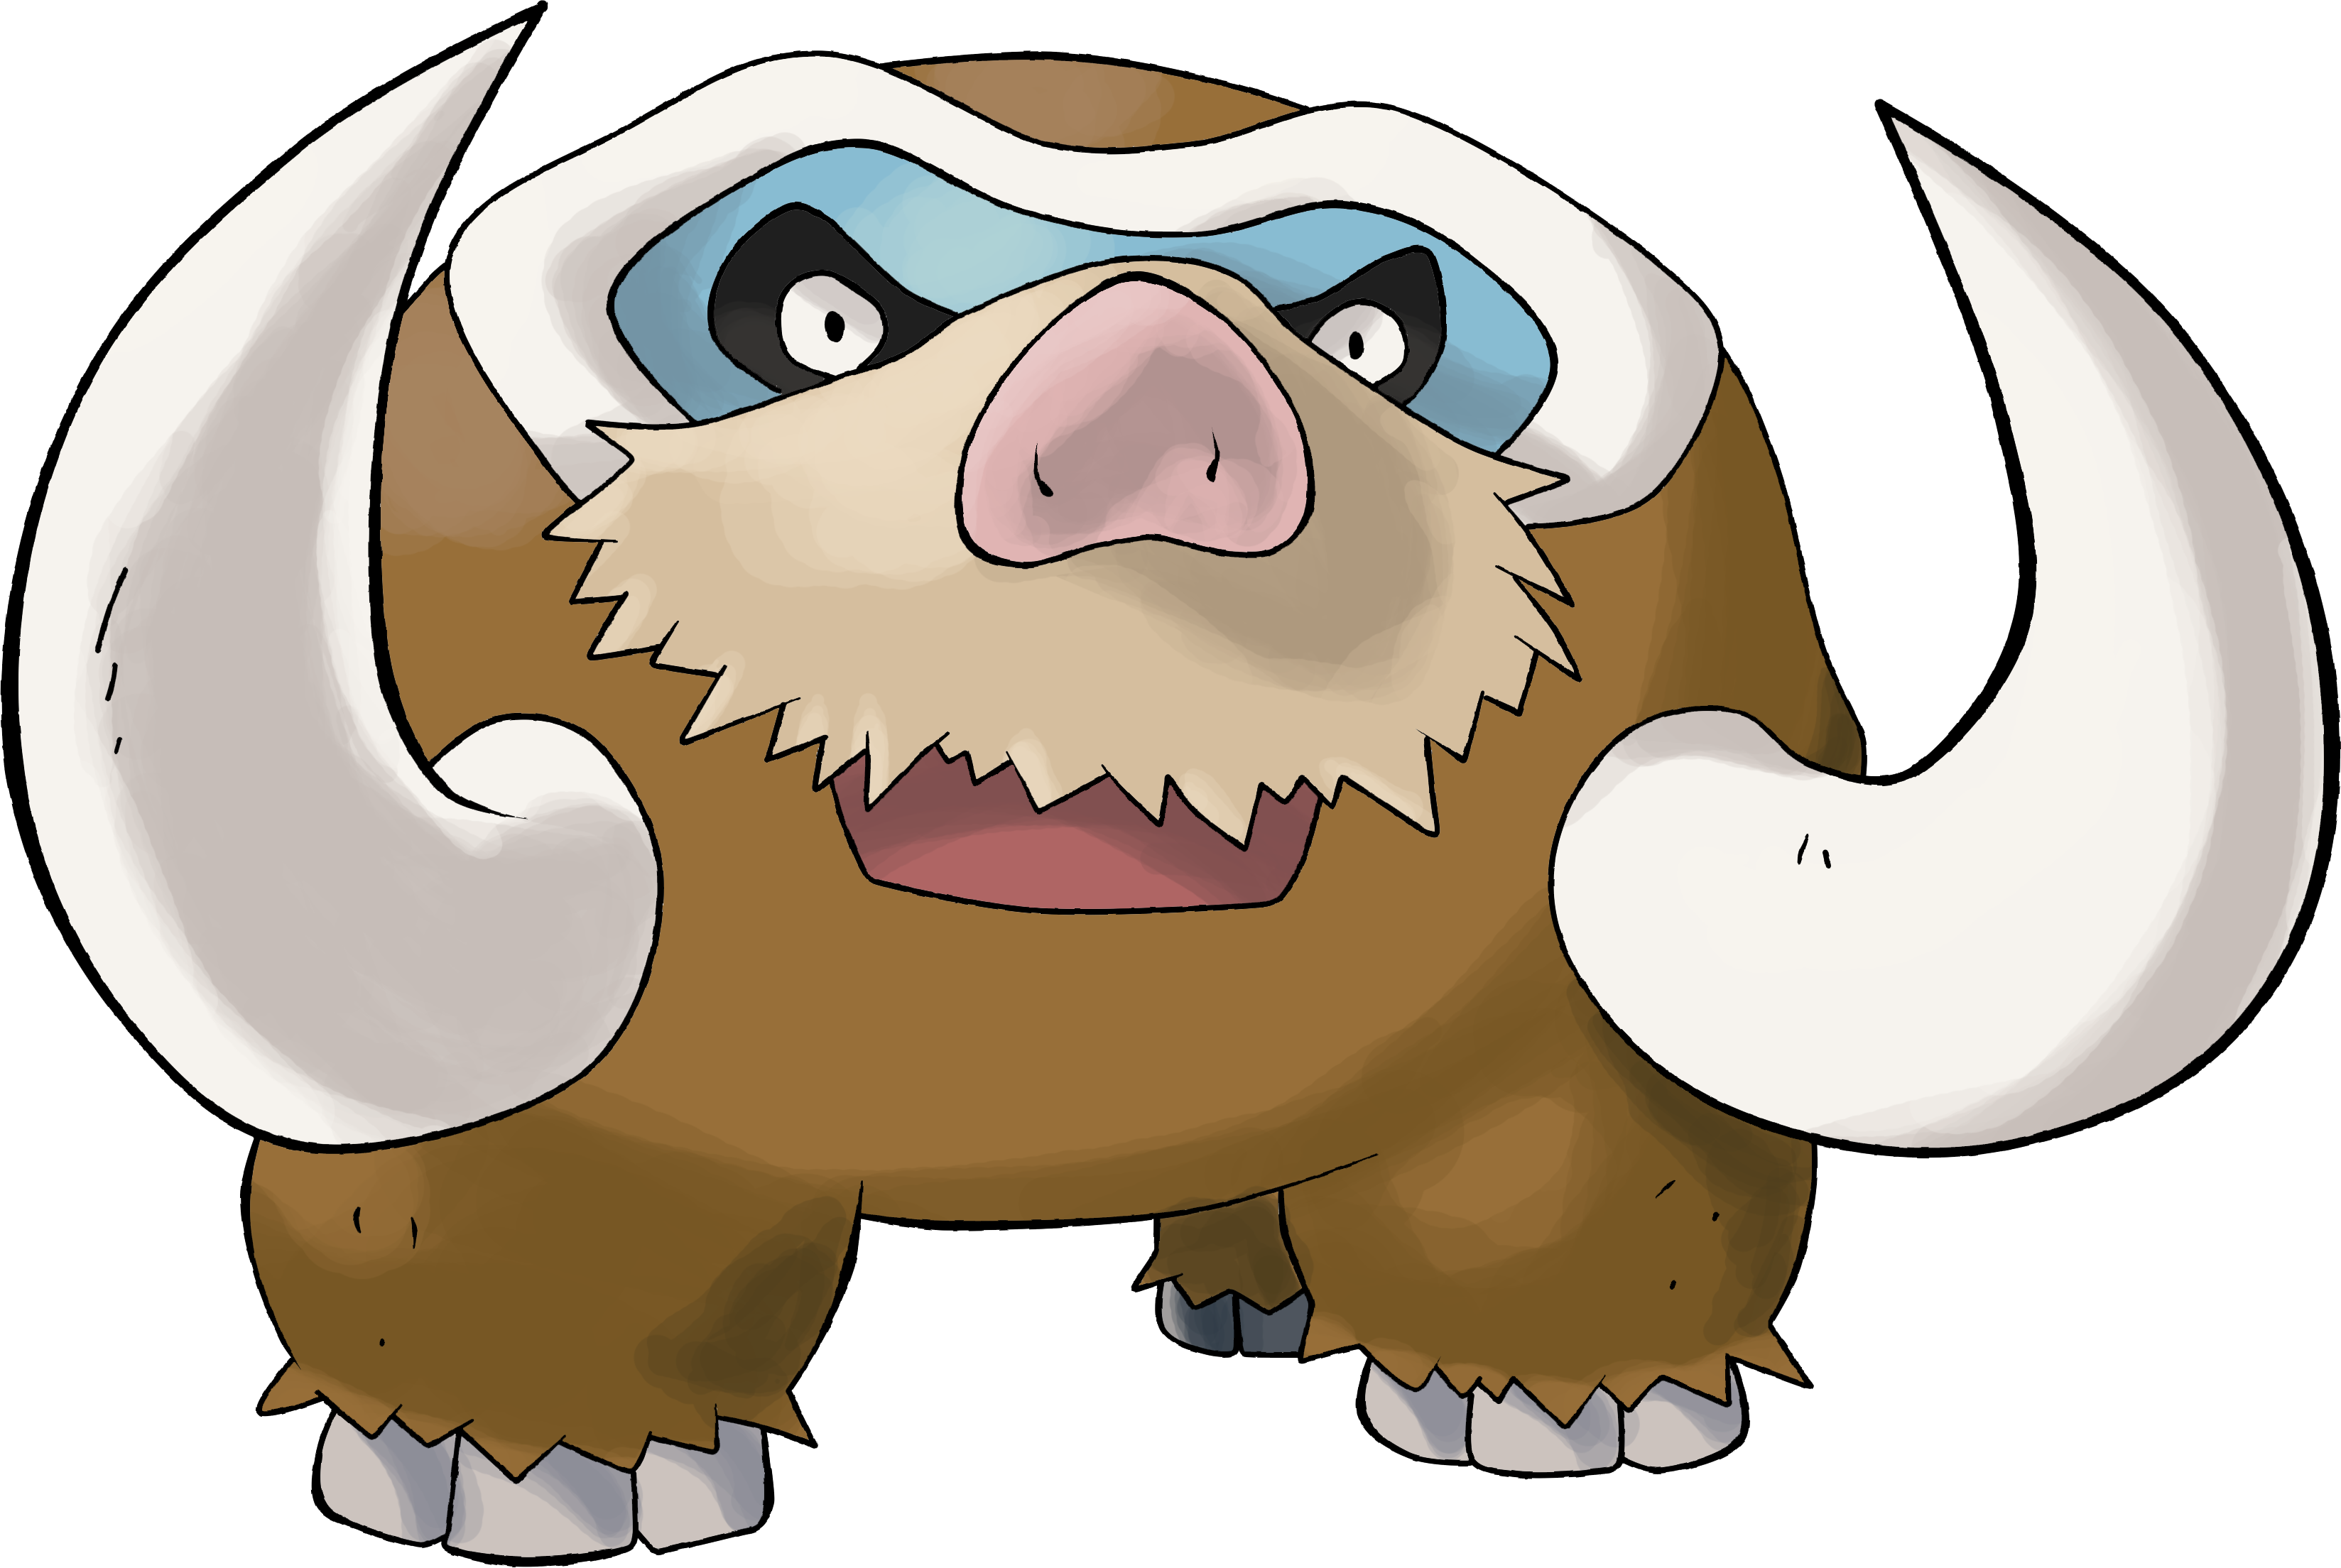 Mamoswine |Day 13 by TheAngryAron on DeviantArt